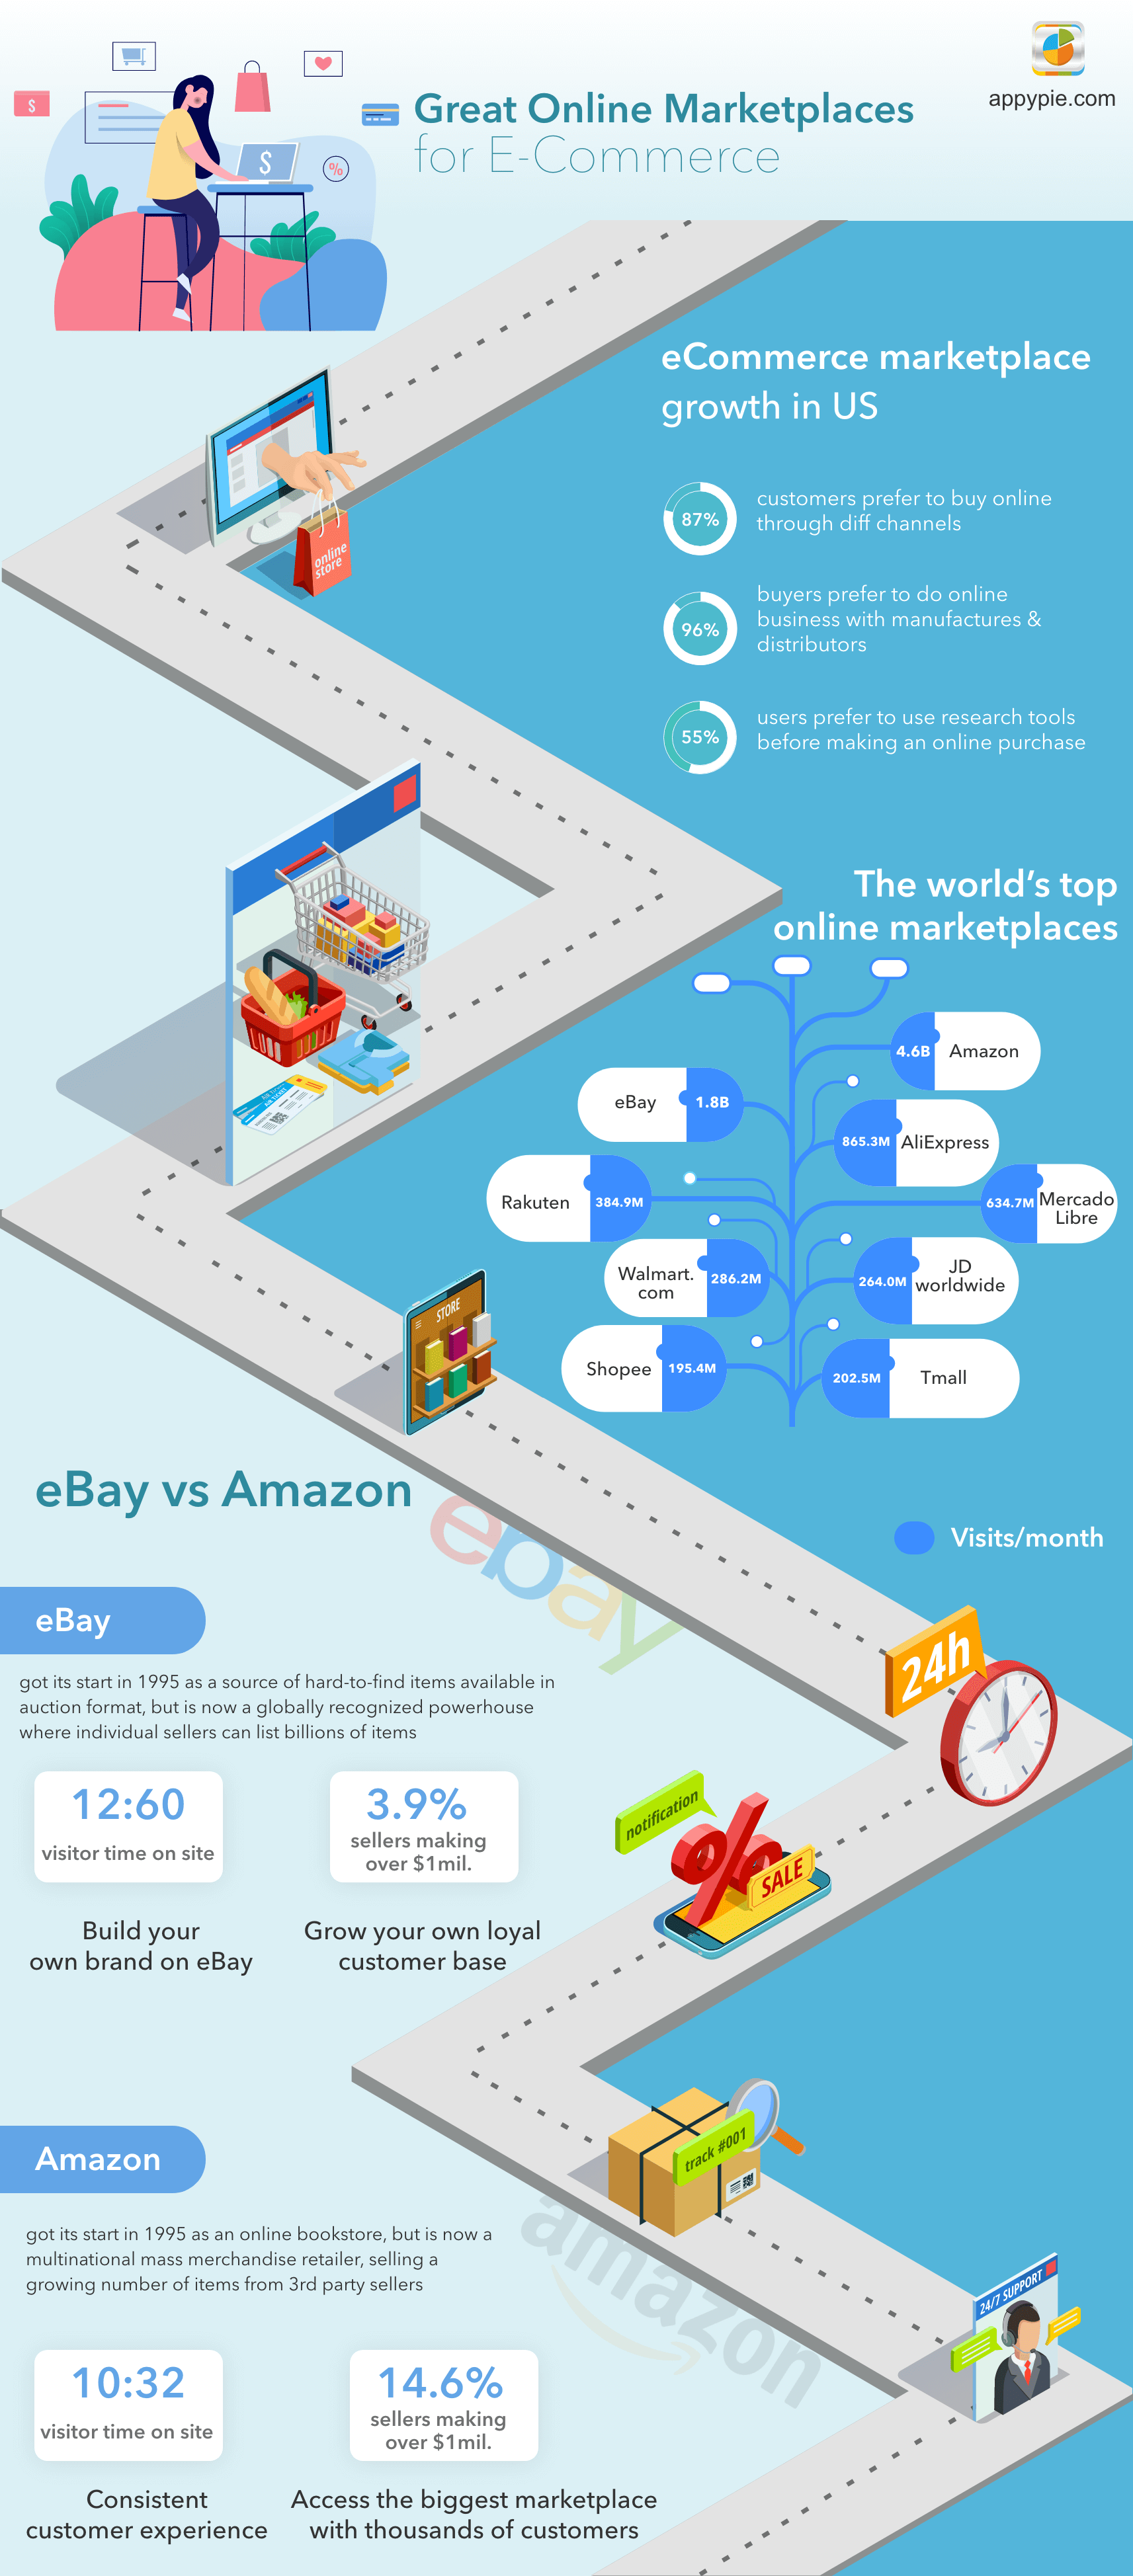 Best Online Marketplaces for eCommerce Selling